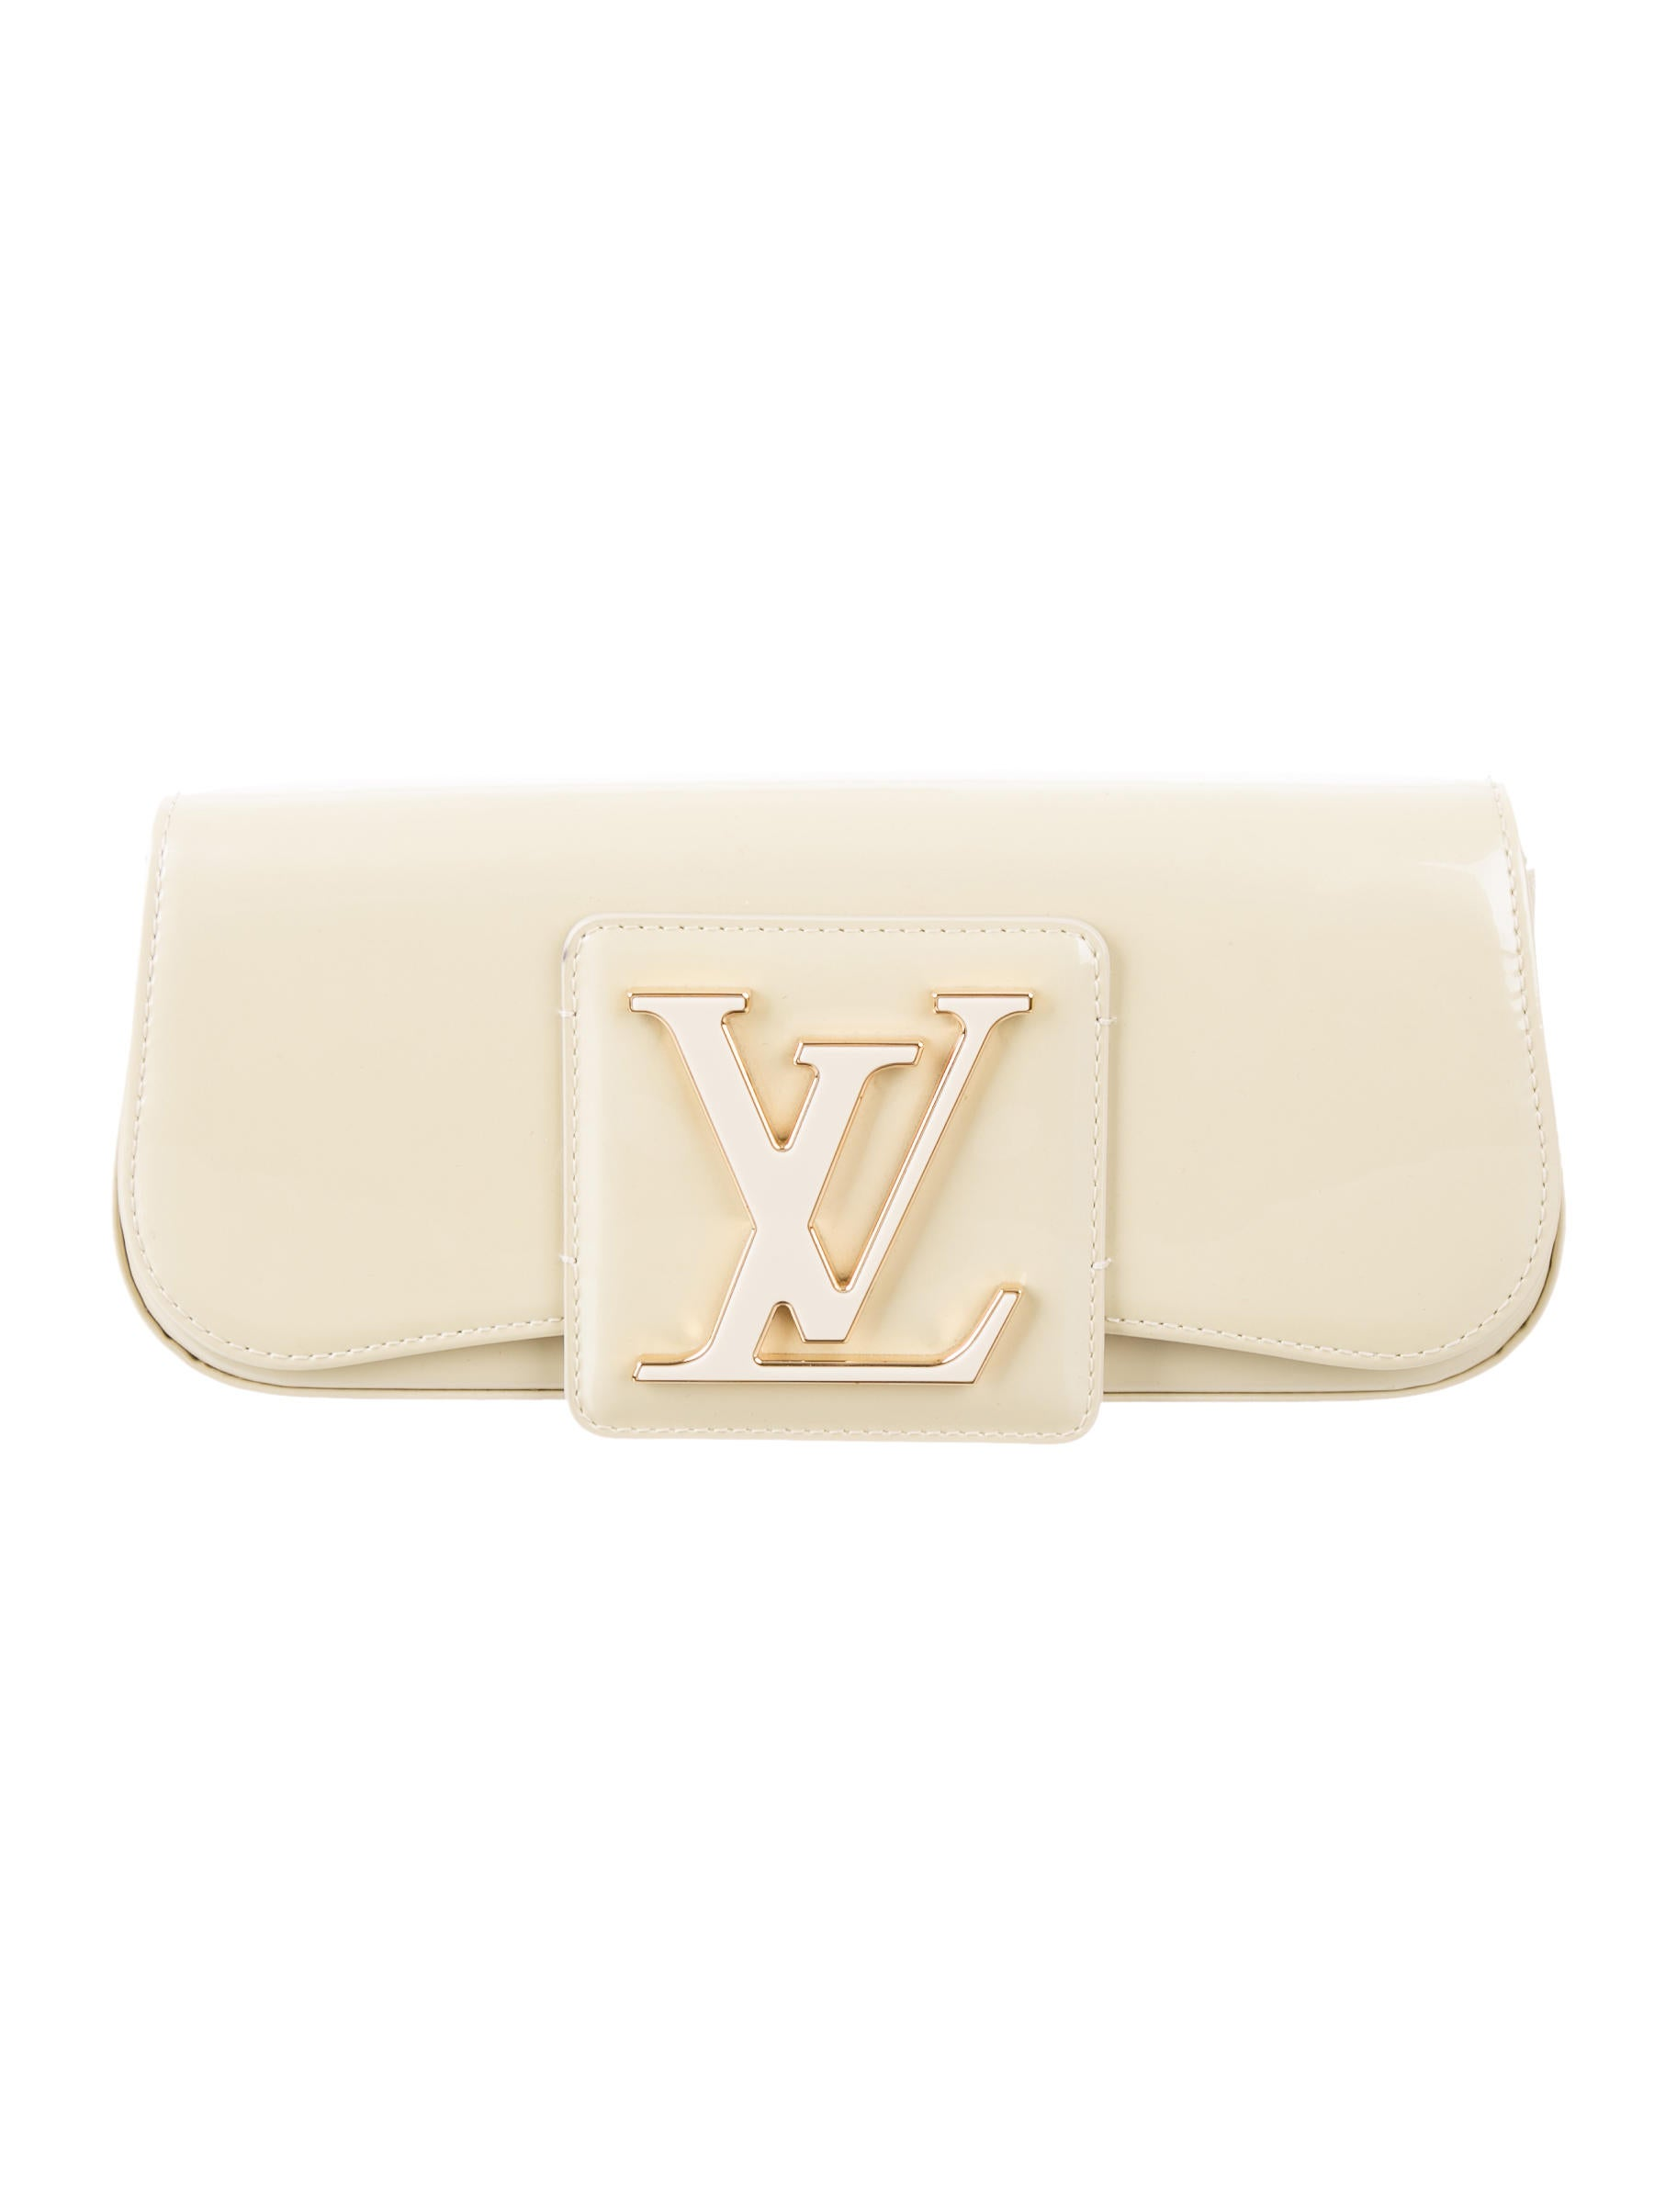 28b7f6ceea Louis Vuitton Vernis Sobe Clutch - Handbags - LOU120427 | The RealReal